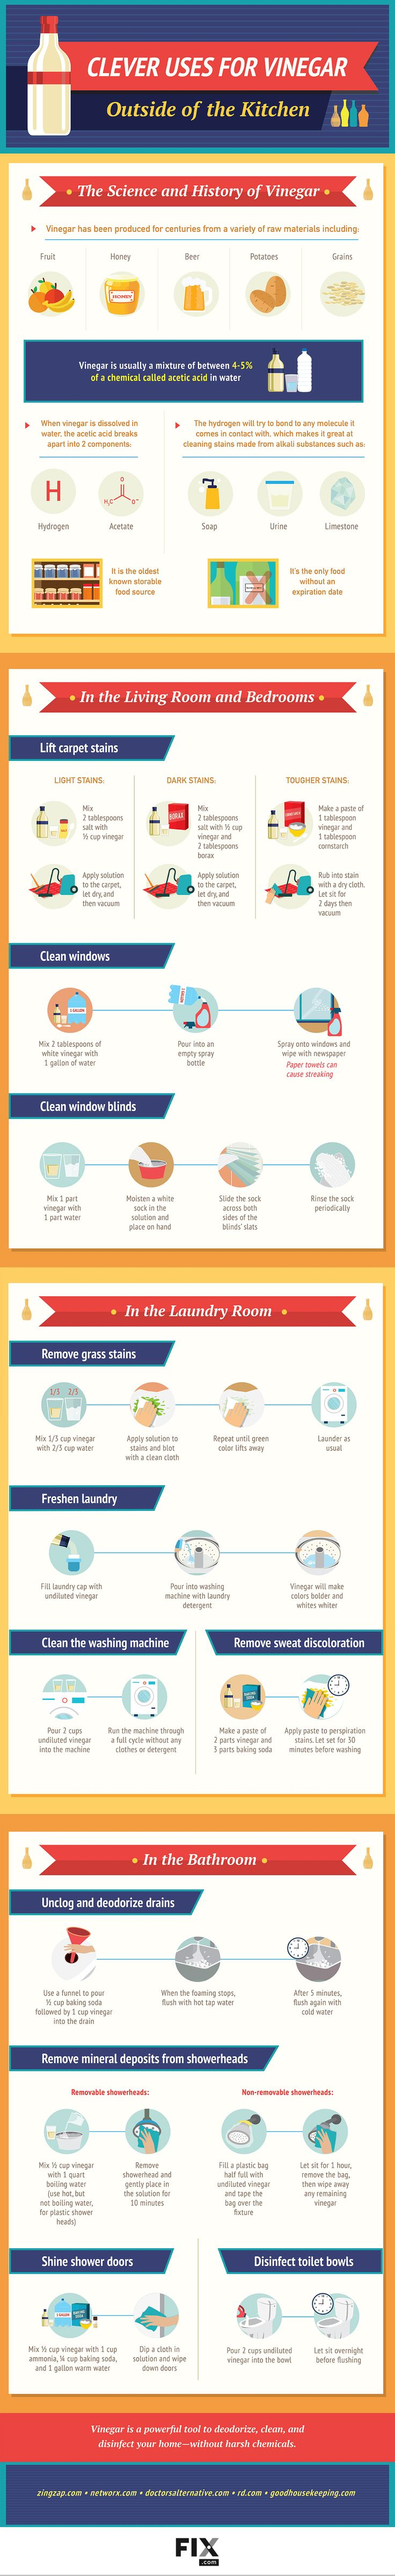 Vinegar is one of the most versatile items you can keep in your pantry. Clean your entire home while saving money and avoiding harmful toxins. Follow this guide to find out how to put vinegar to work for you.